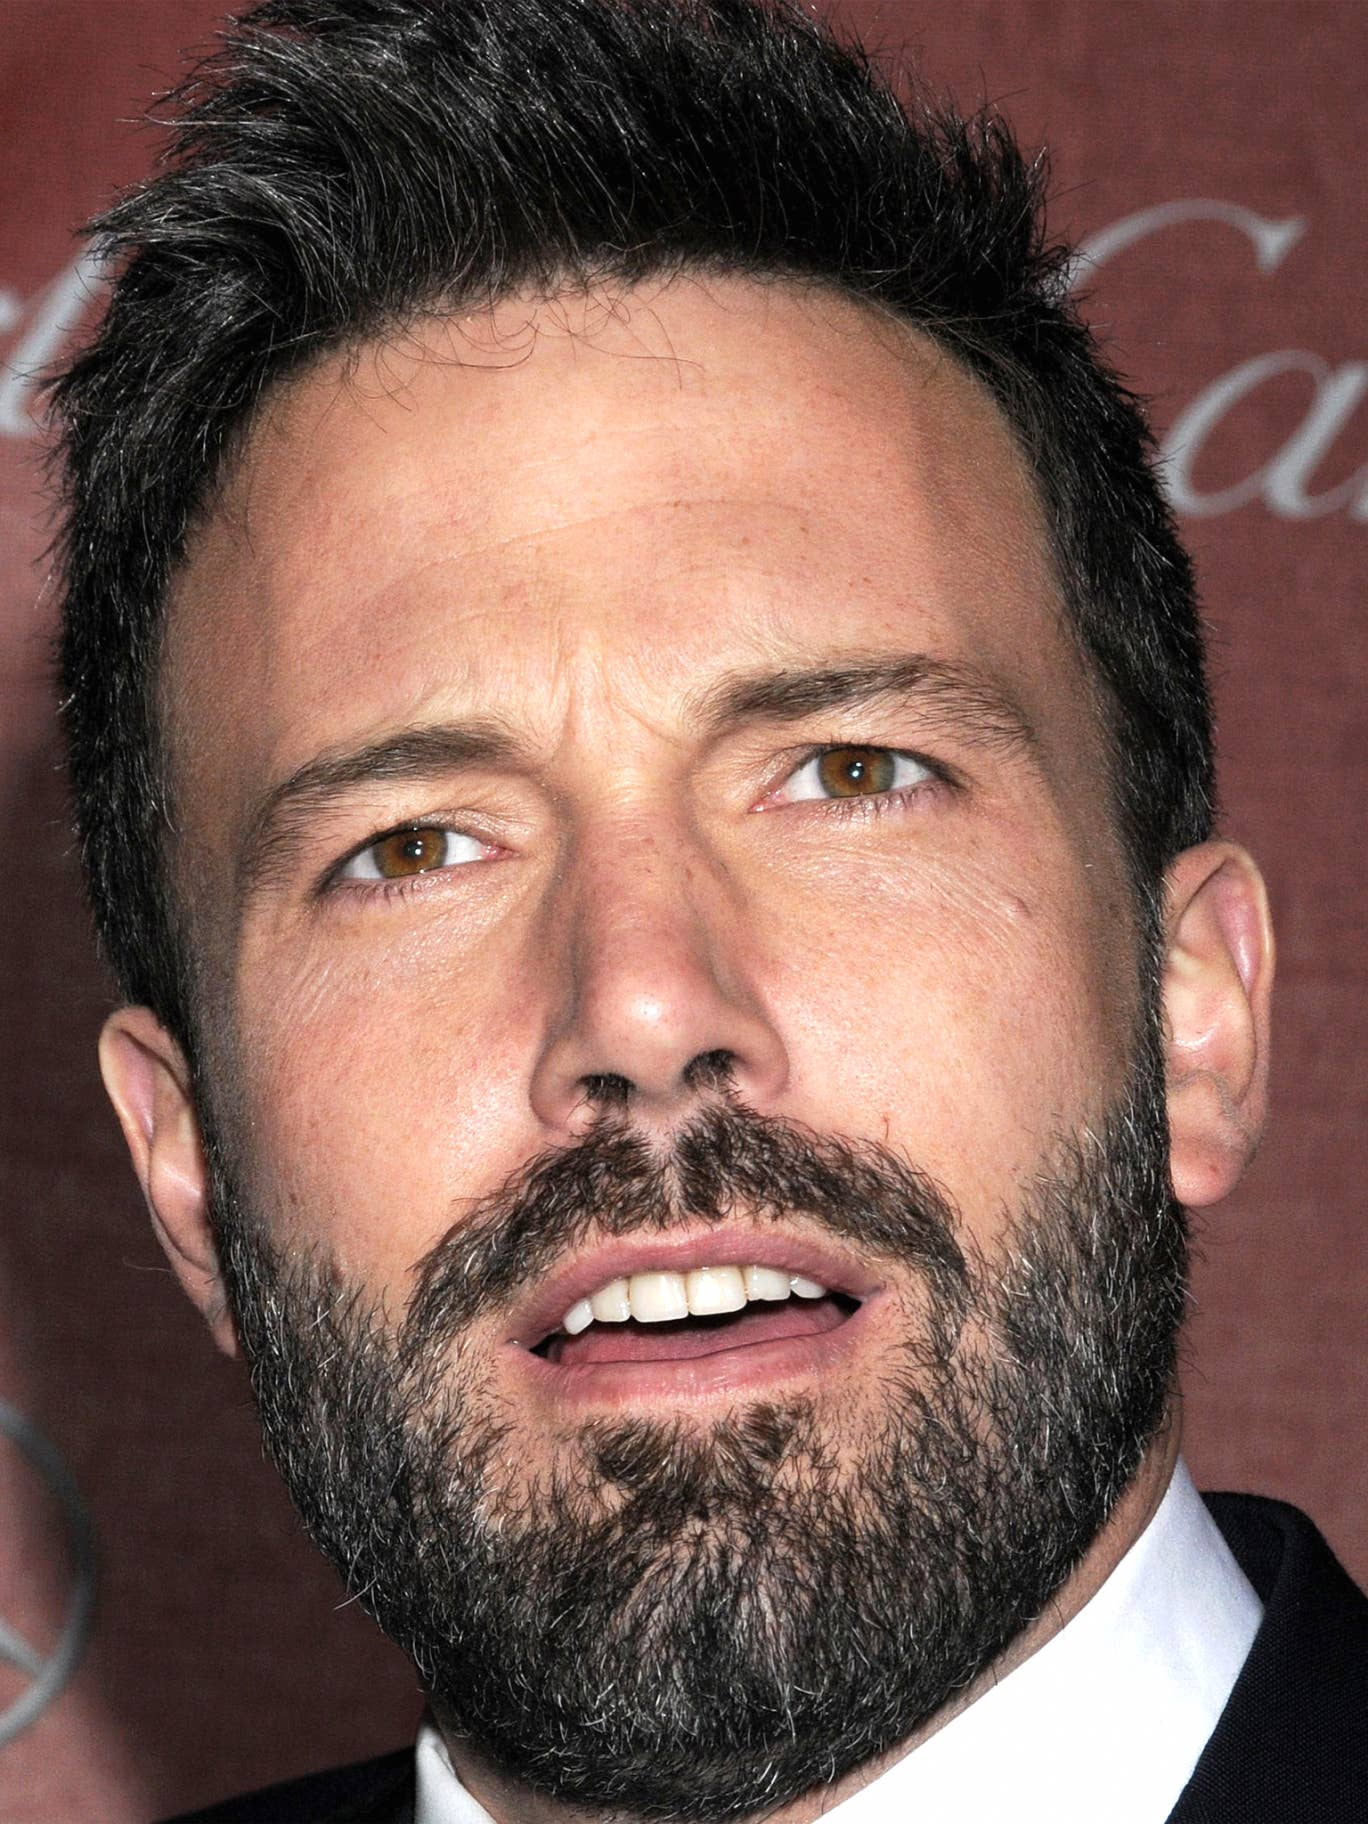 Bearded actor and director Ben Affleck